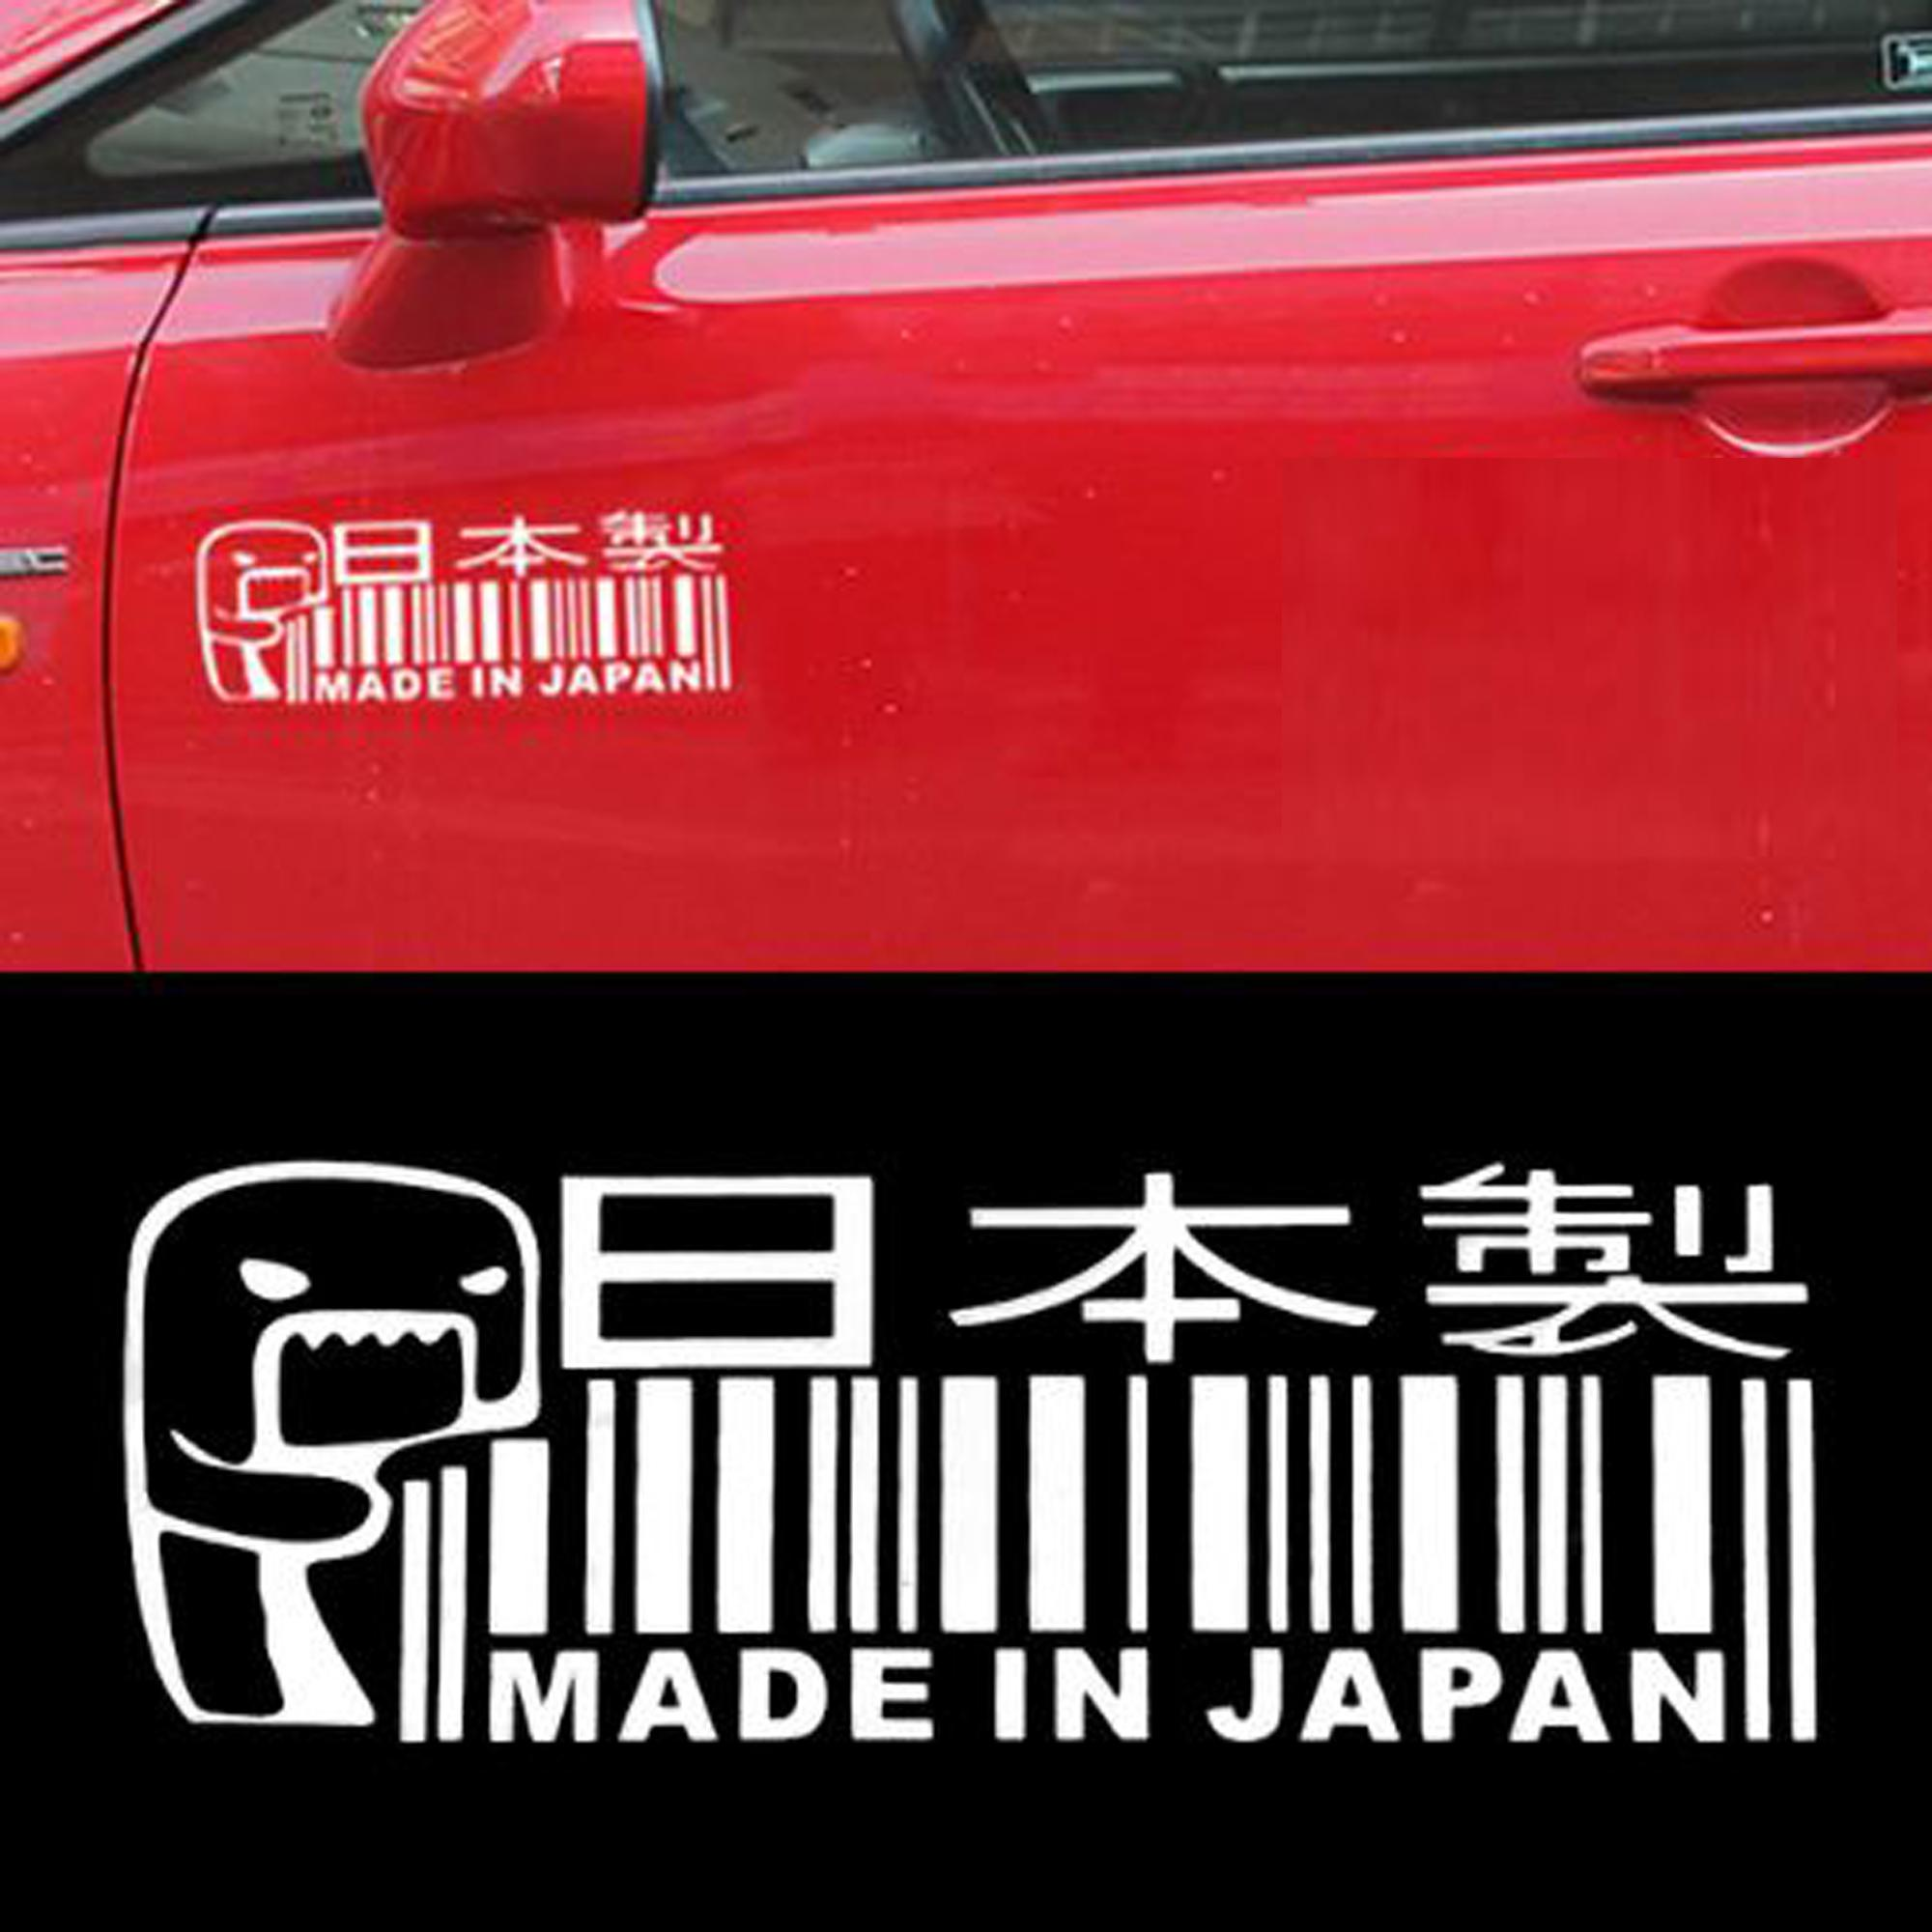 1pcs made in japan barcode type white colour car sticker 14cm x 5cm